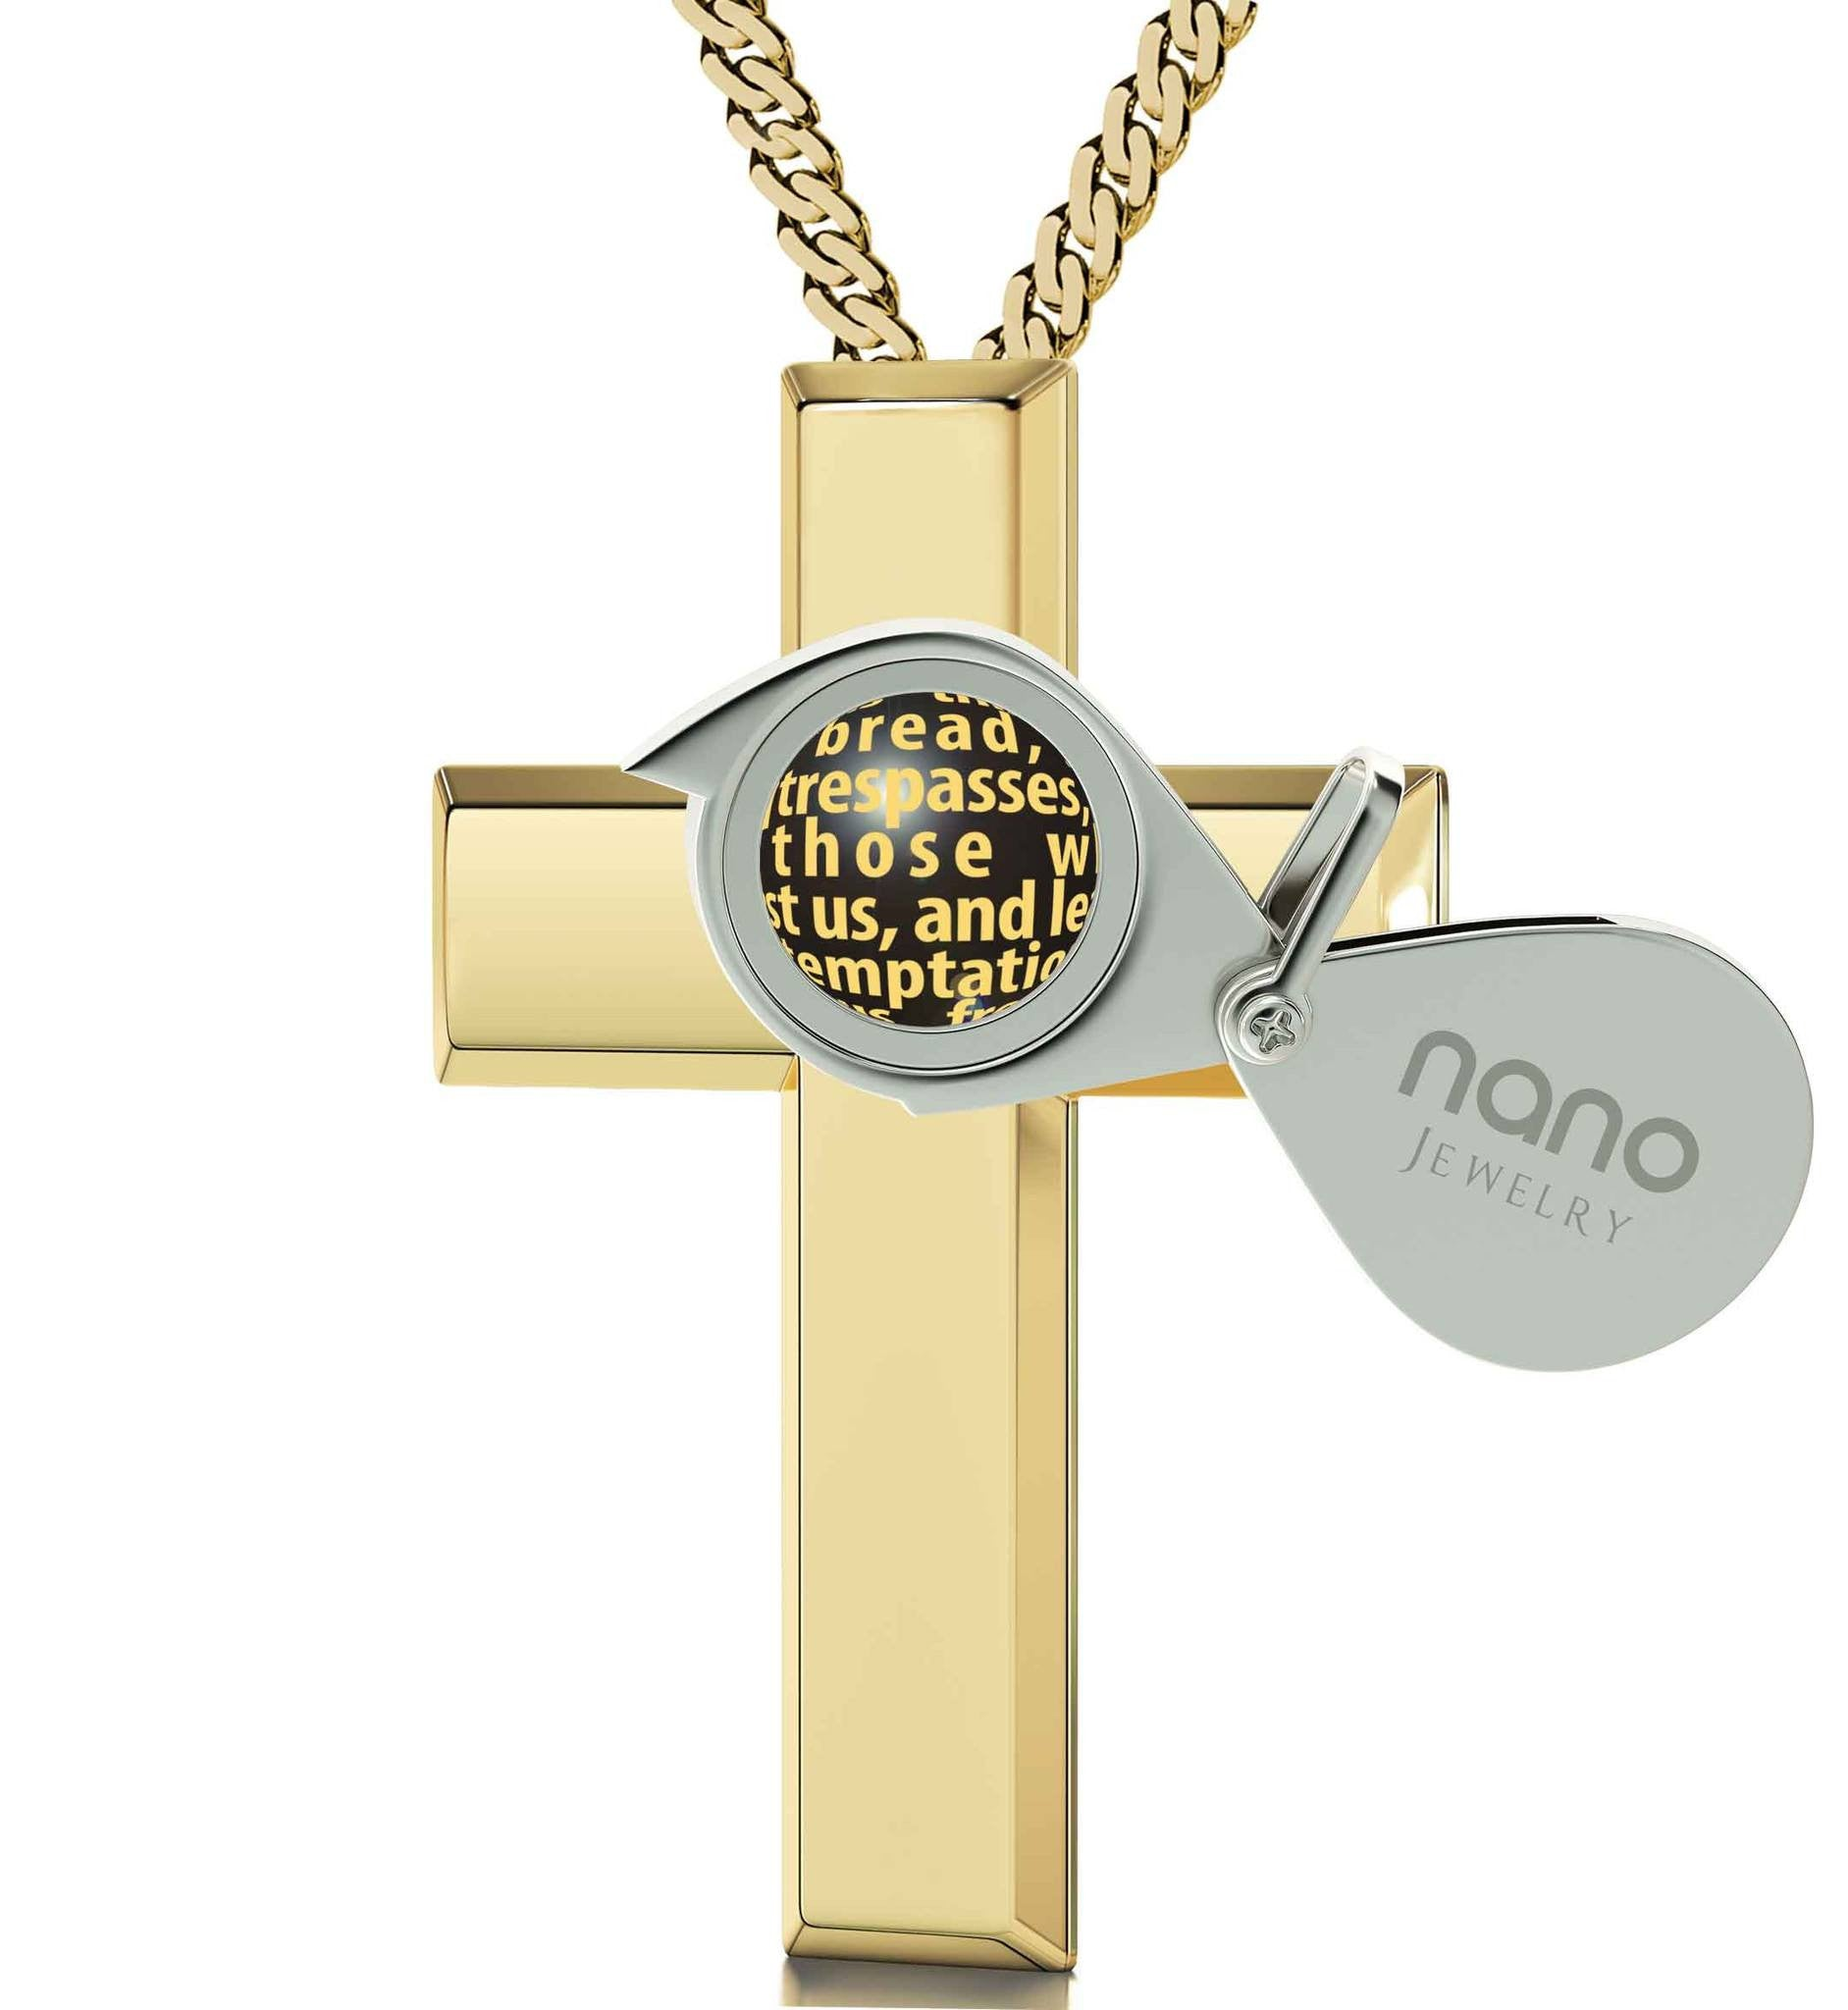 Womens Gold Cross Necklace, Our Father Prayer. Buy Now at Nano Jewelry